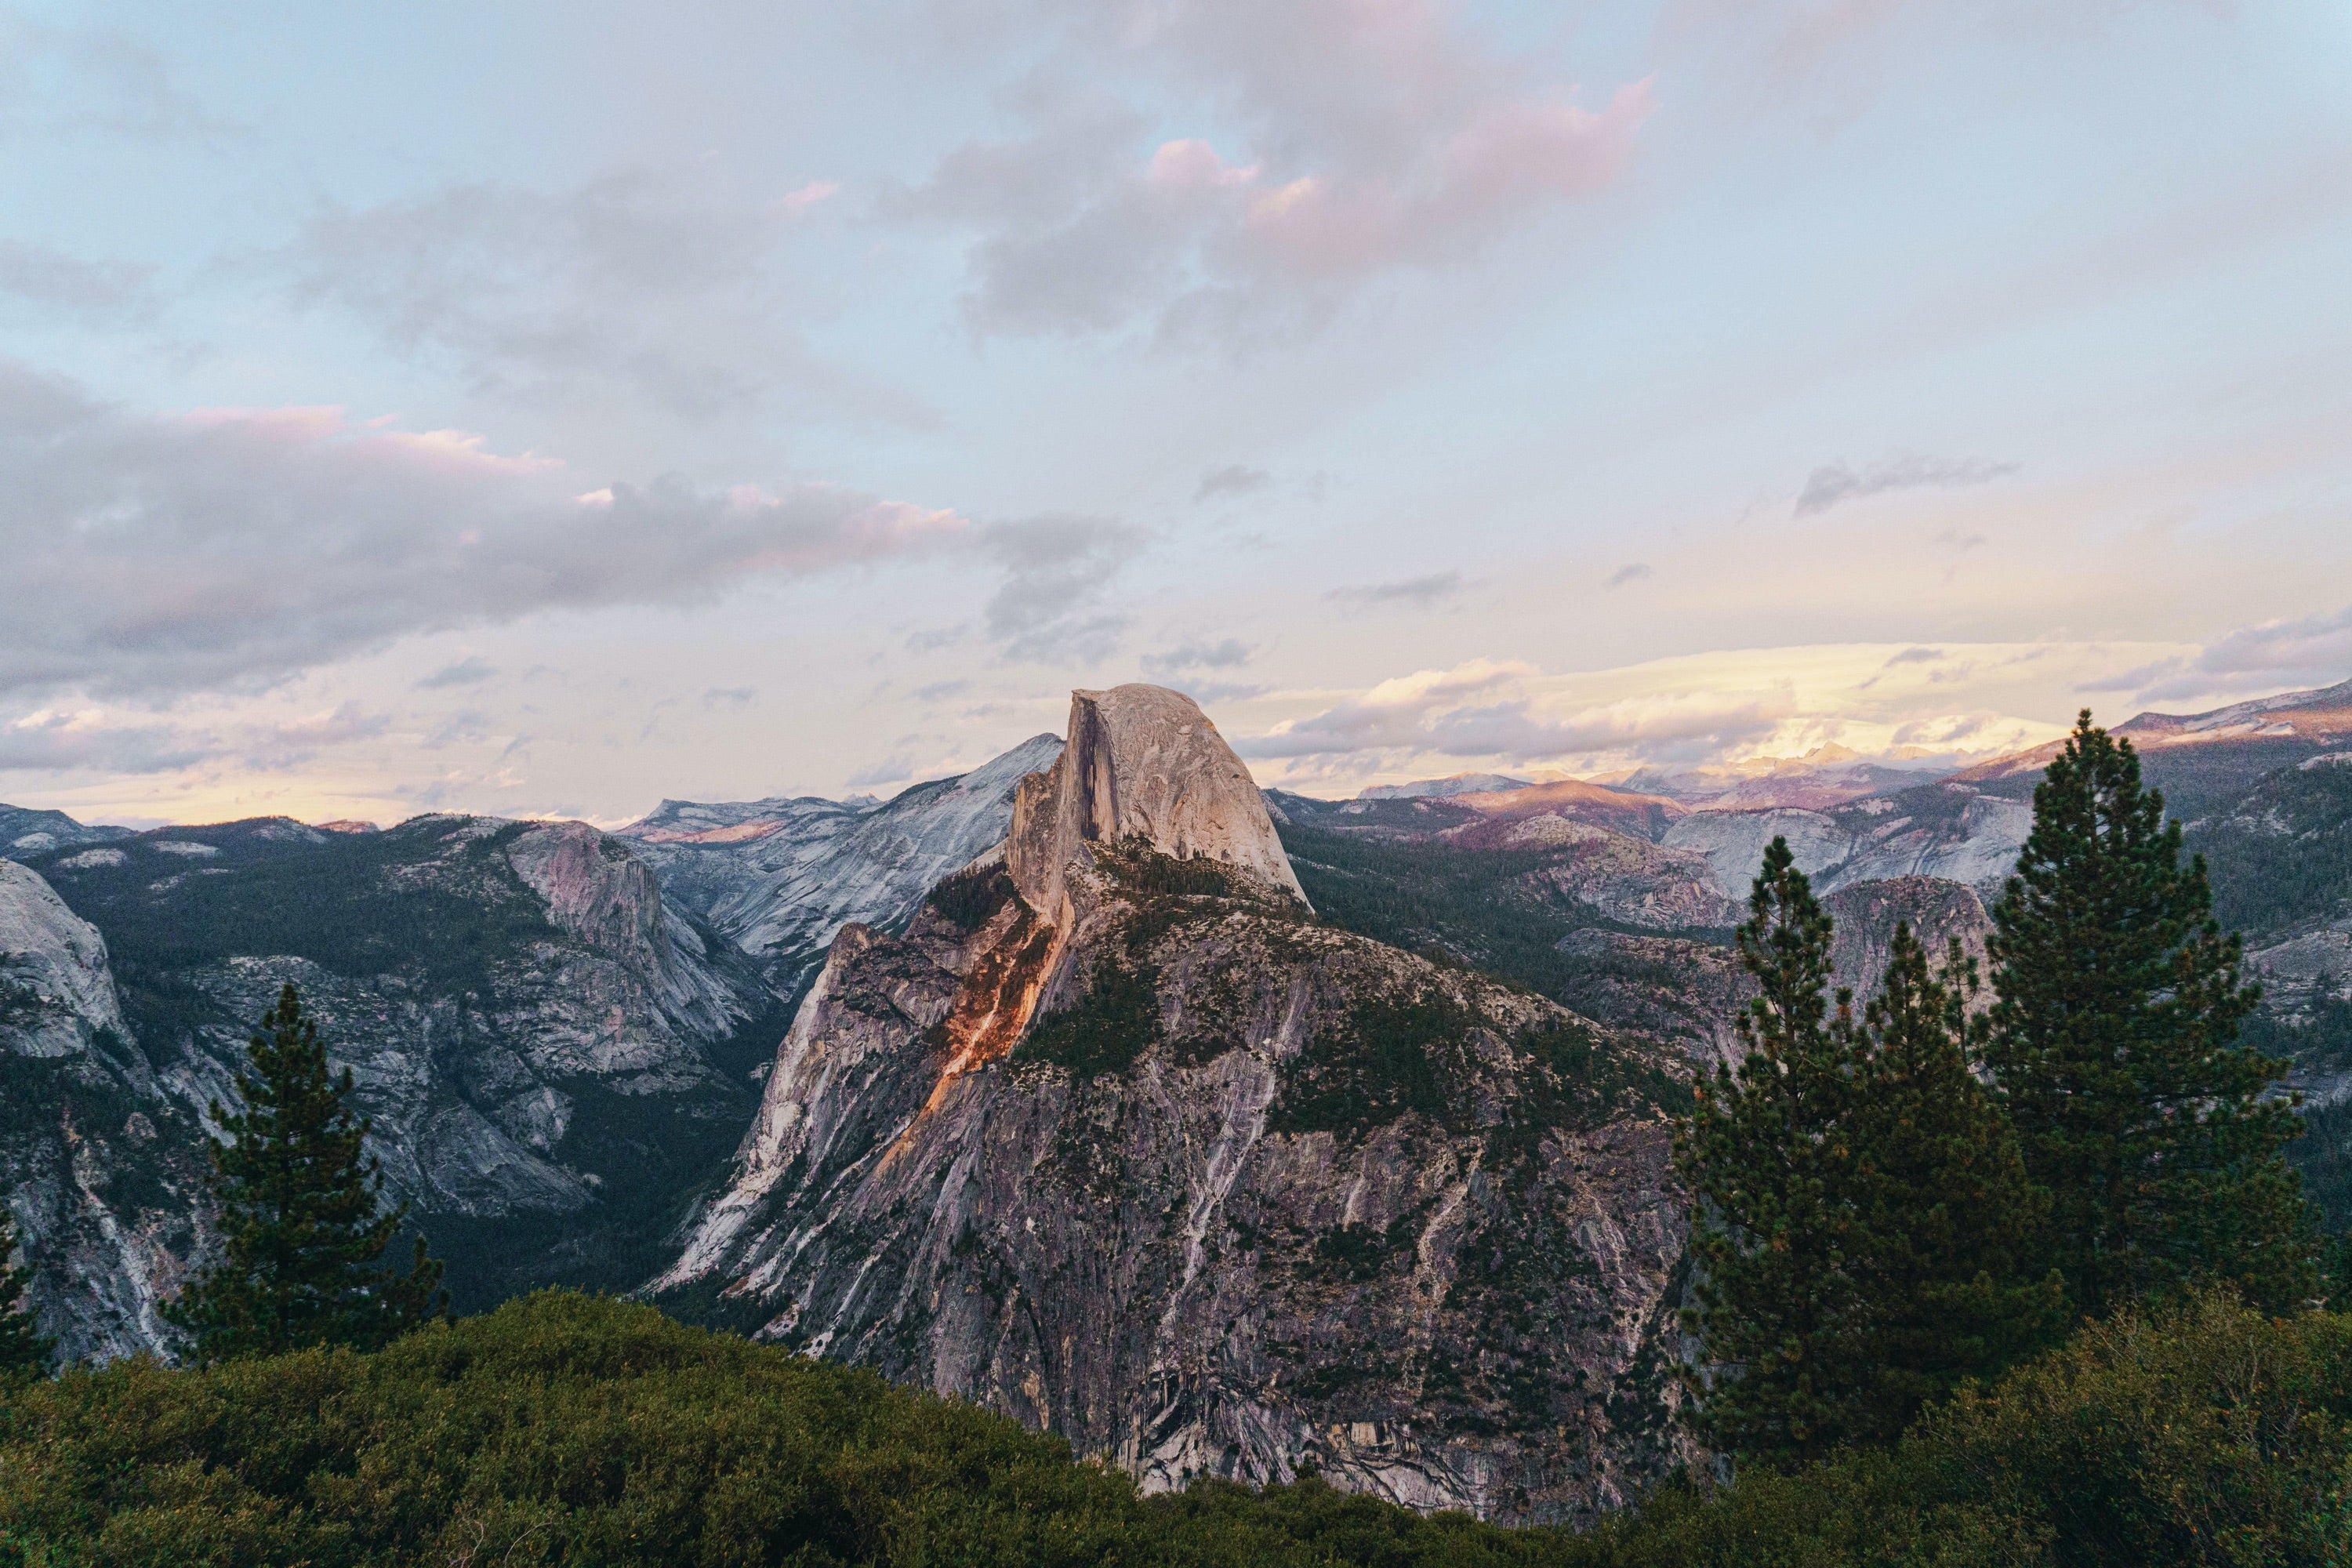 best memorial day hikes, hiking half dome, hiking zion, hiking angels landing, hiking huckleberry mountain, best hikes near me